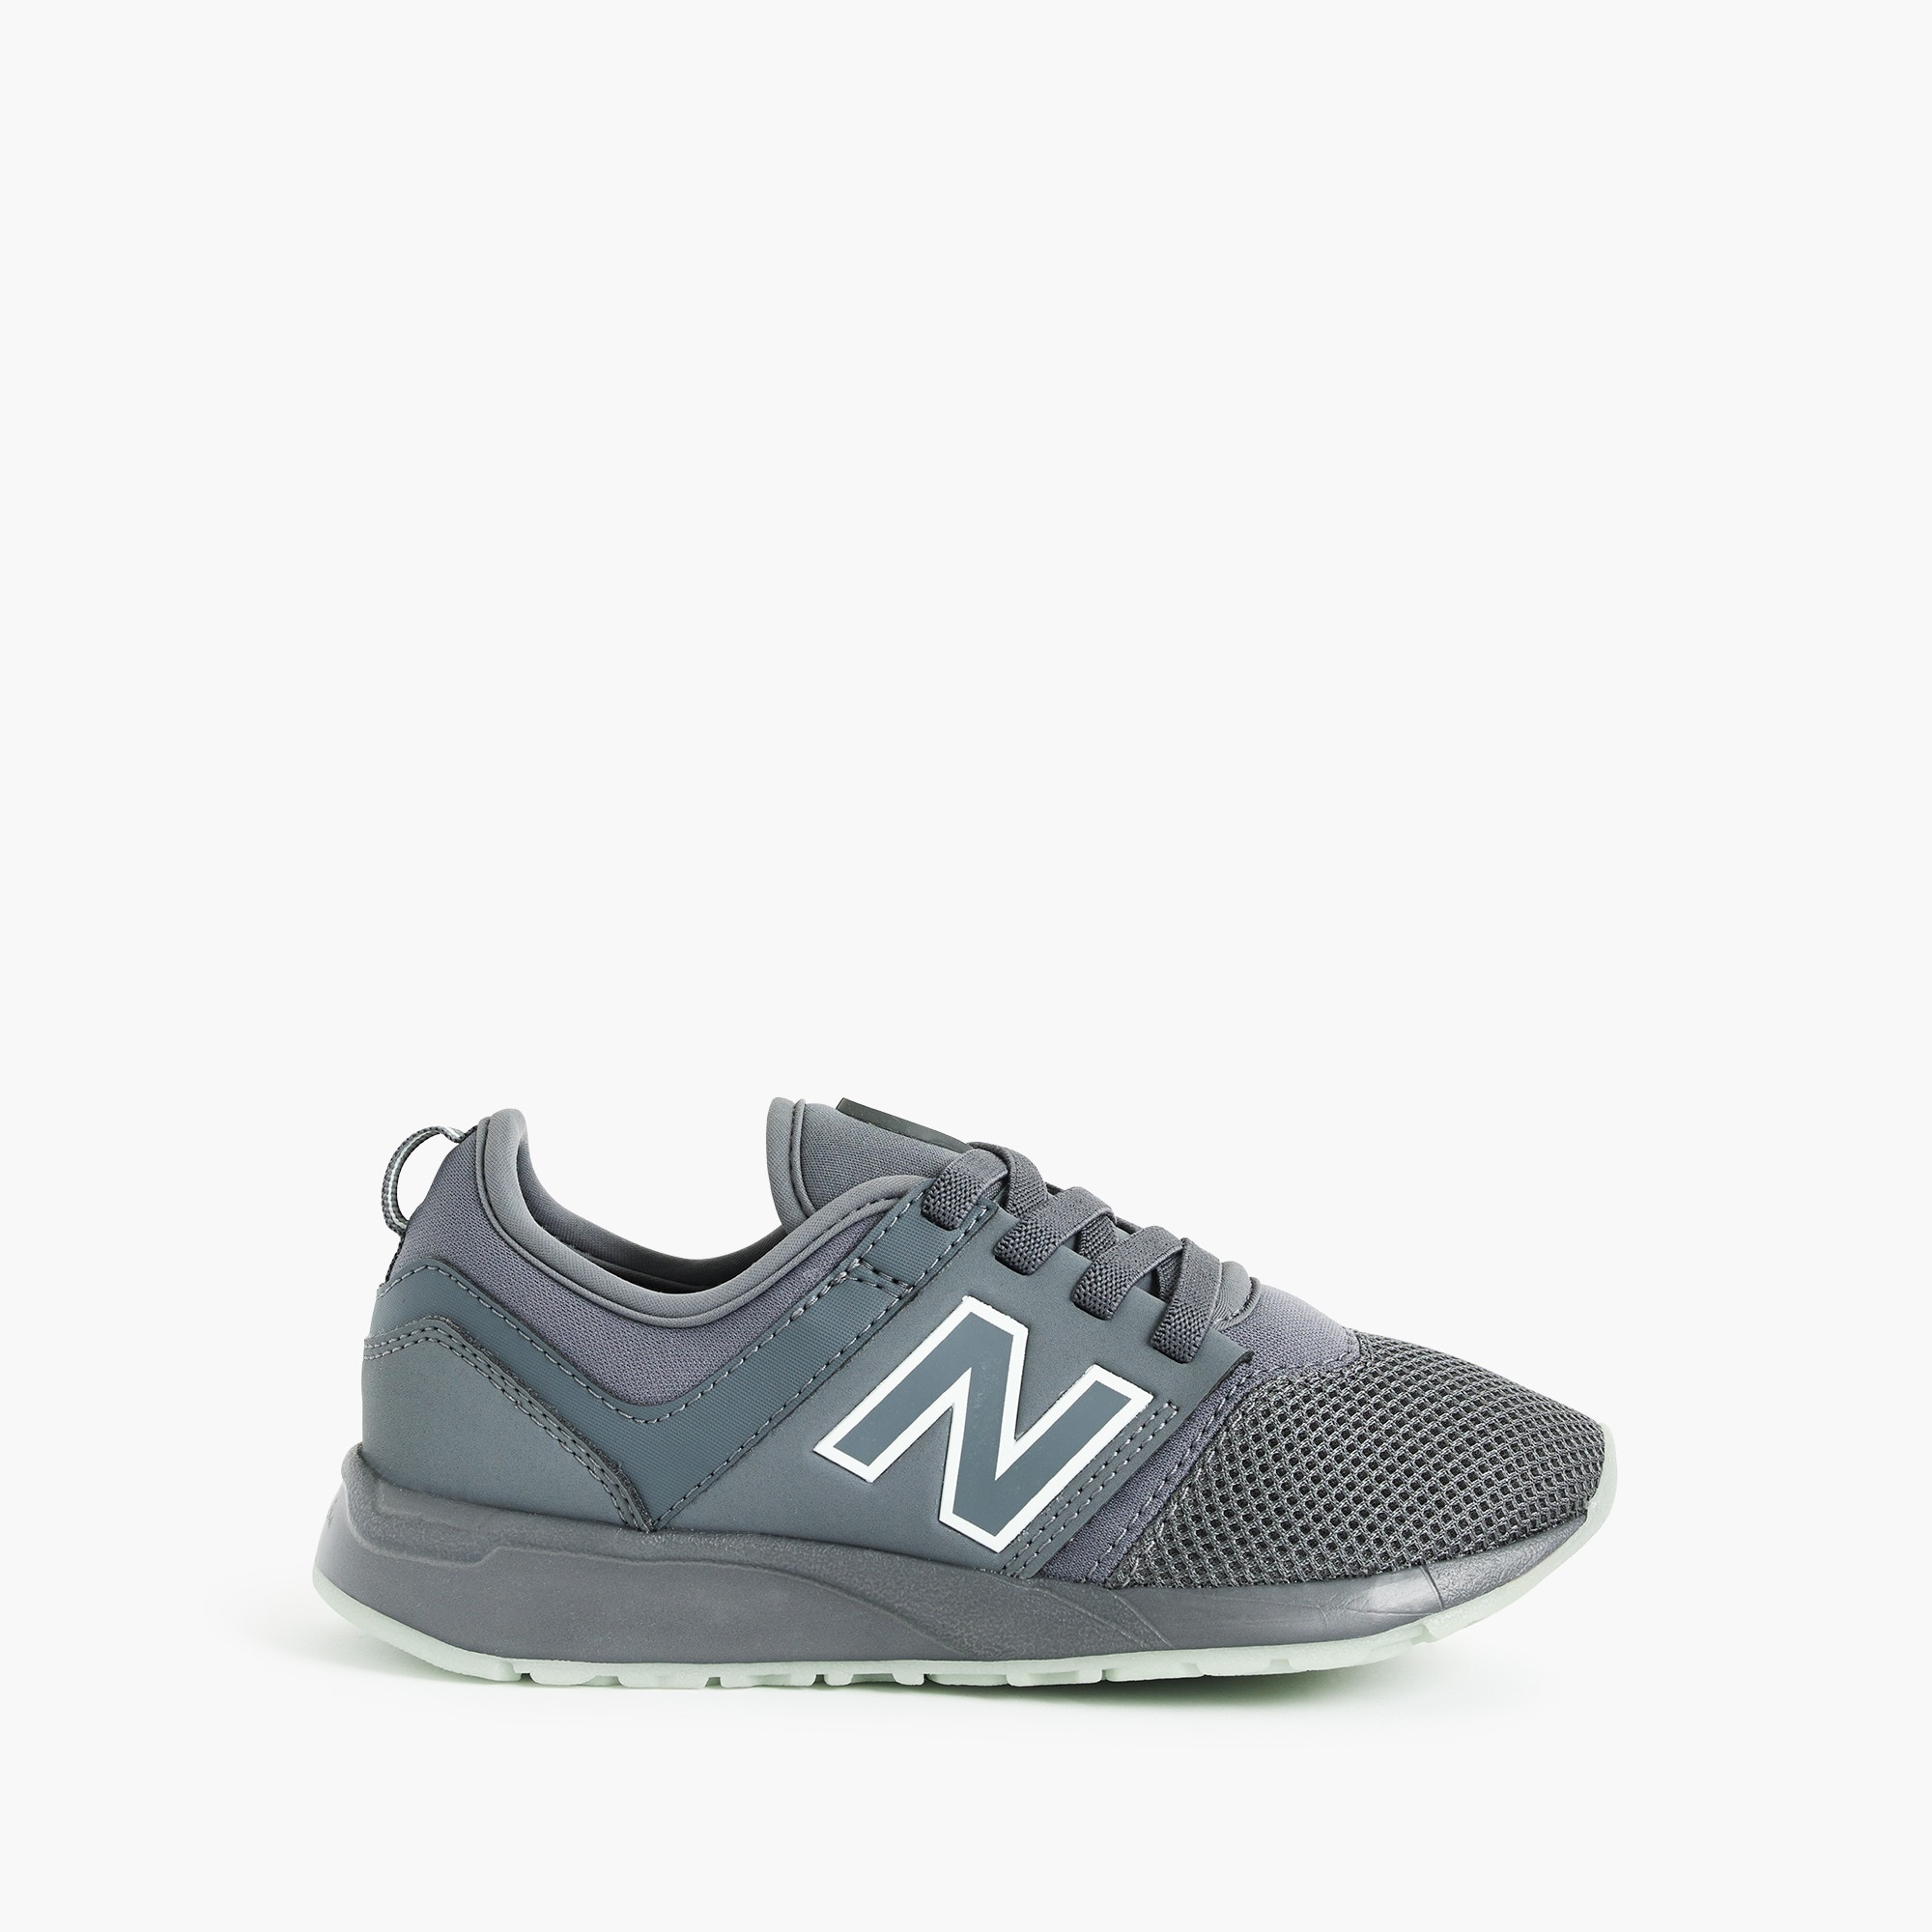 Kids' New Balance® for crewcuts 24/7 sneakers with no-tie laces girl j.crew in good company c